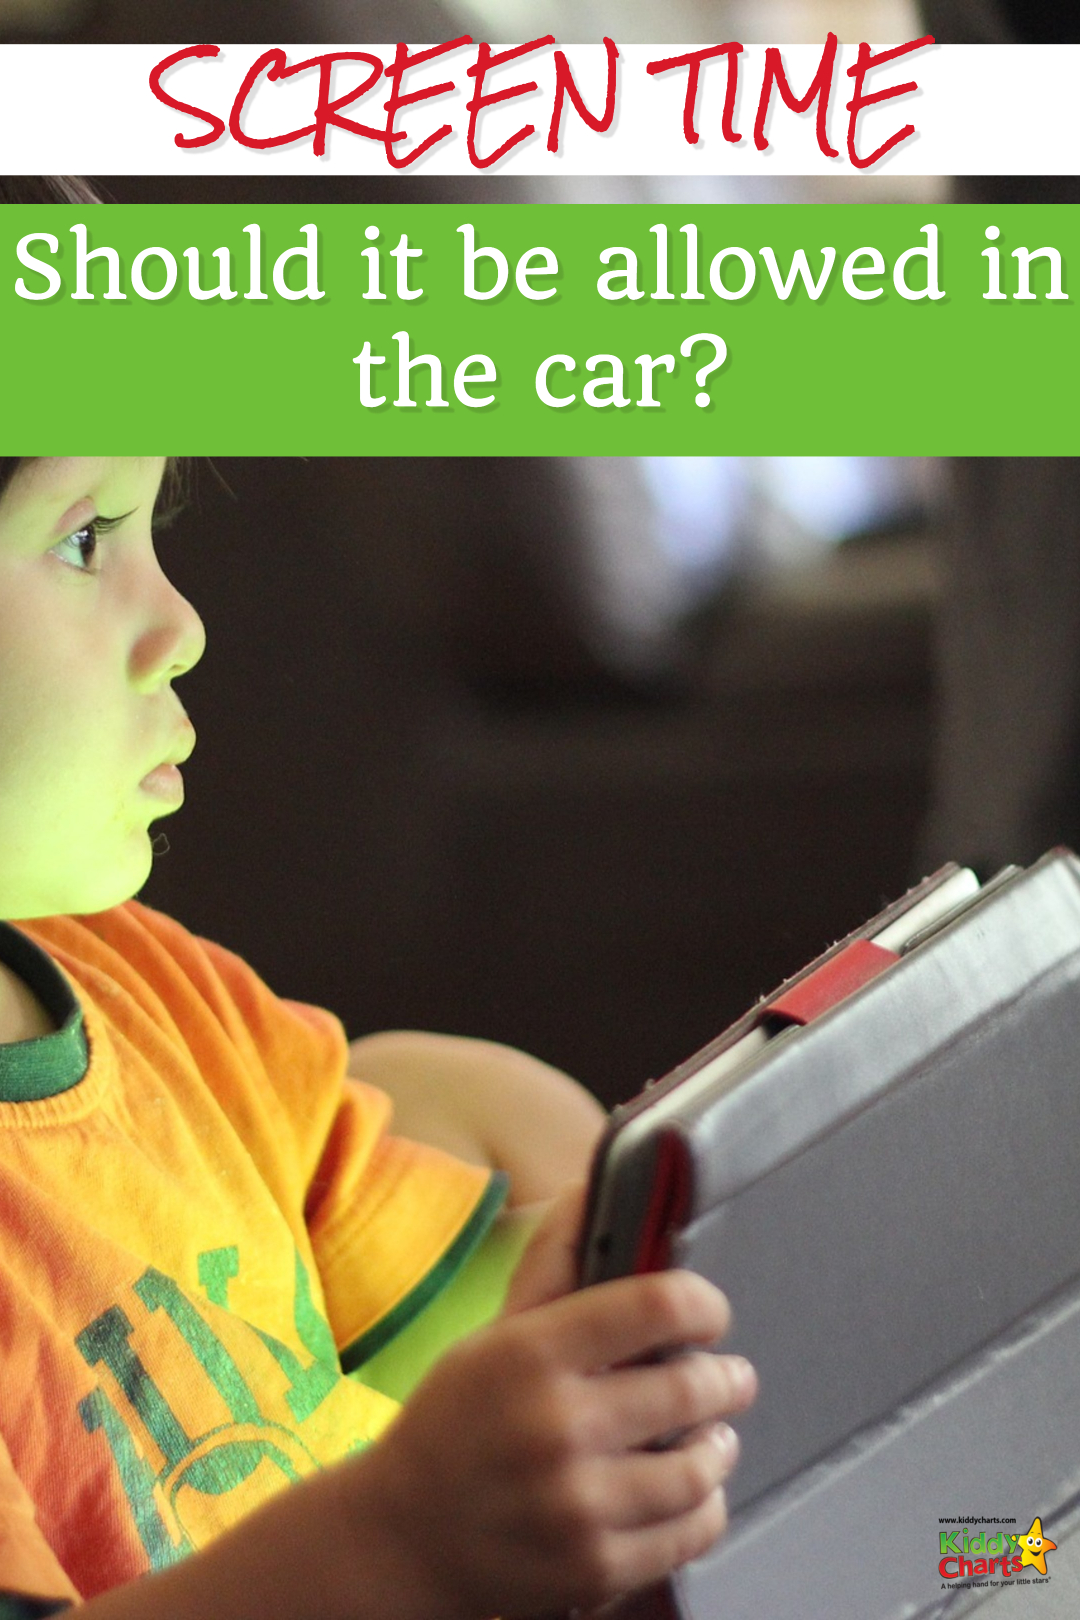 Should you be allowing screen time in the car with your kids - what do YOU think? #technology #screentime #kids #parenting #parents